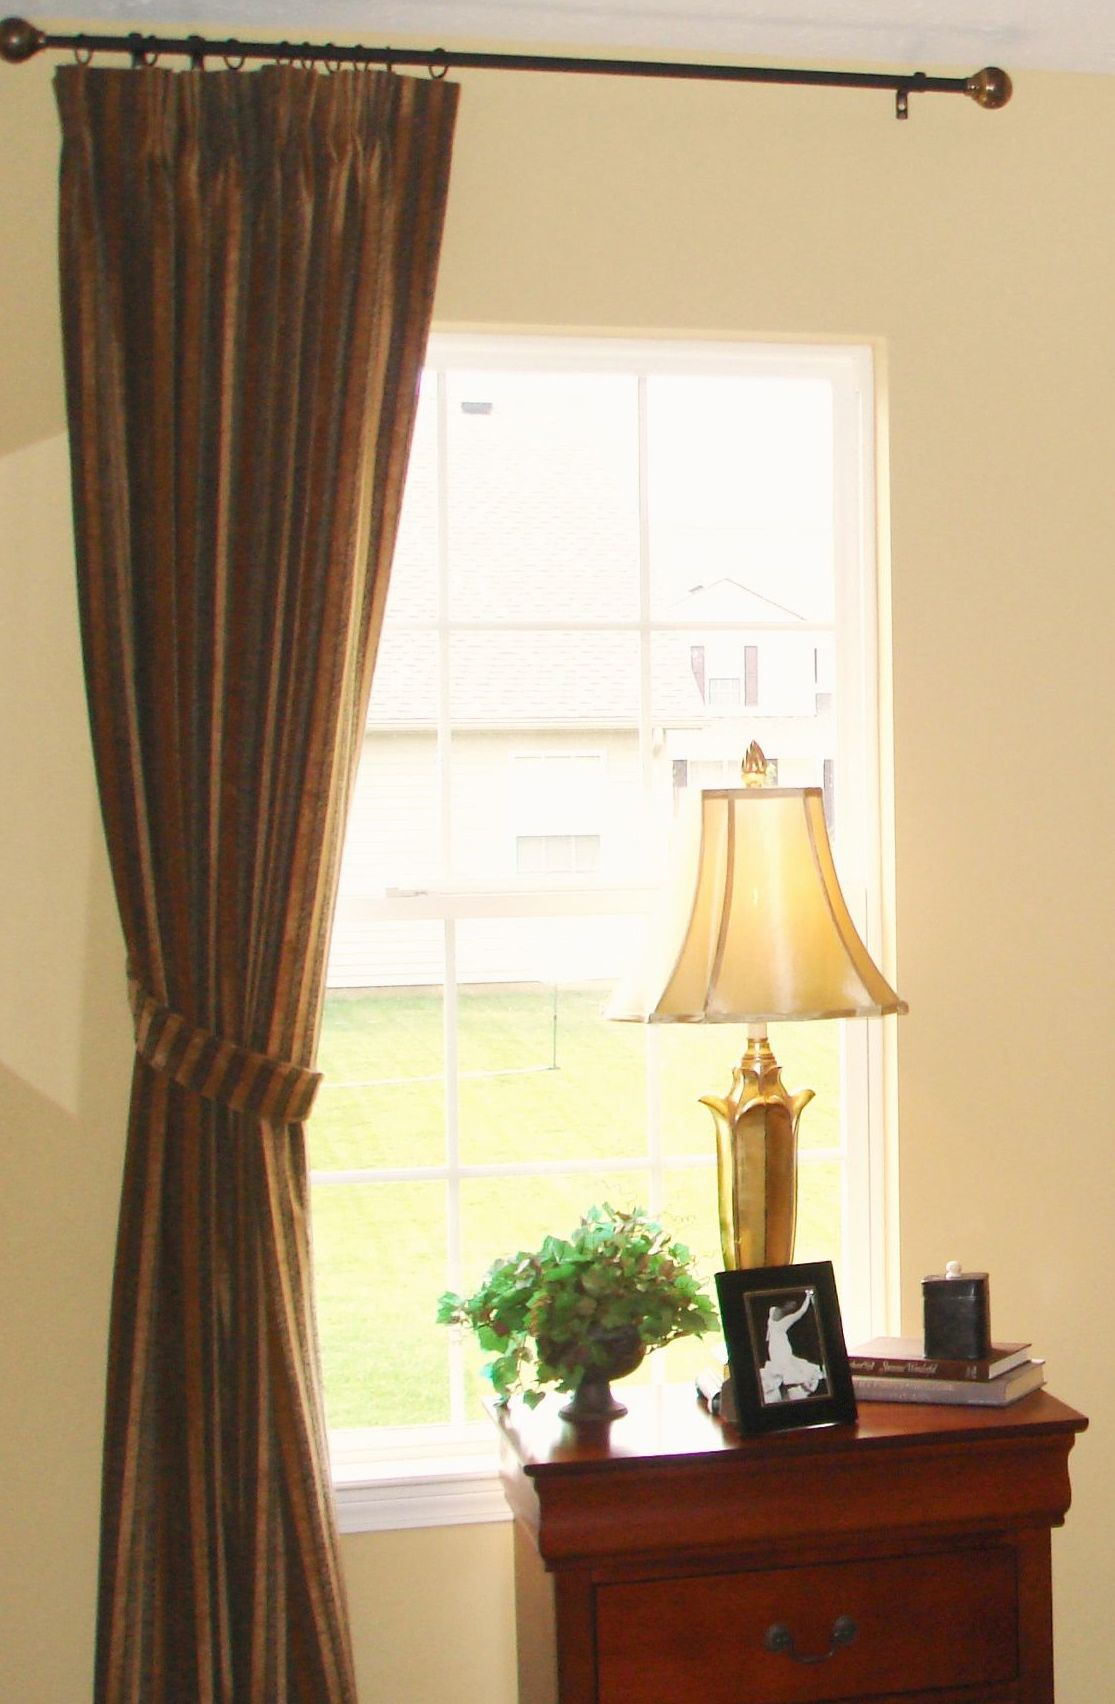 Tips For A Better Home Inside And Out >>> Continue with the details ...